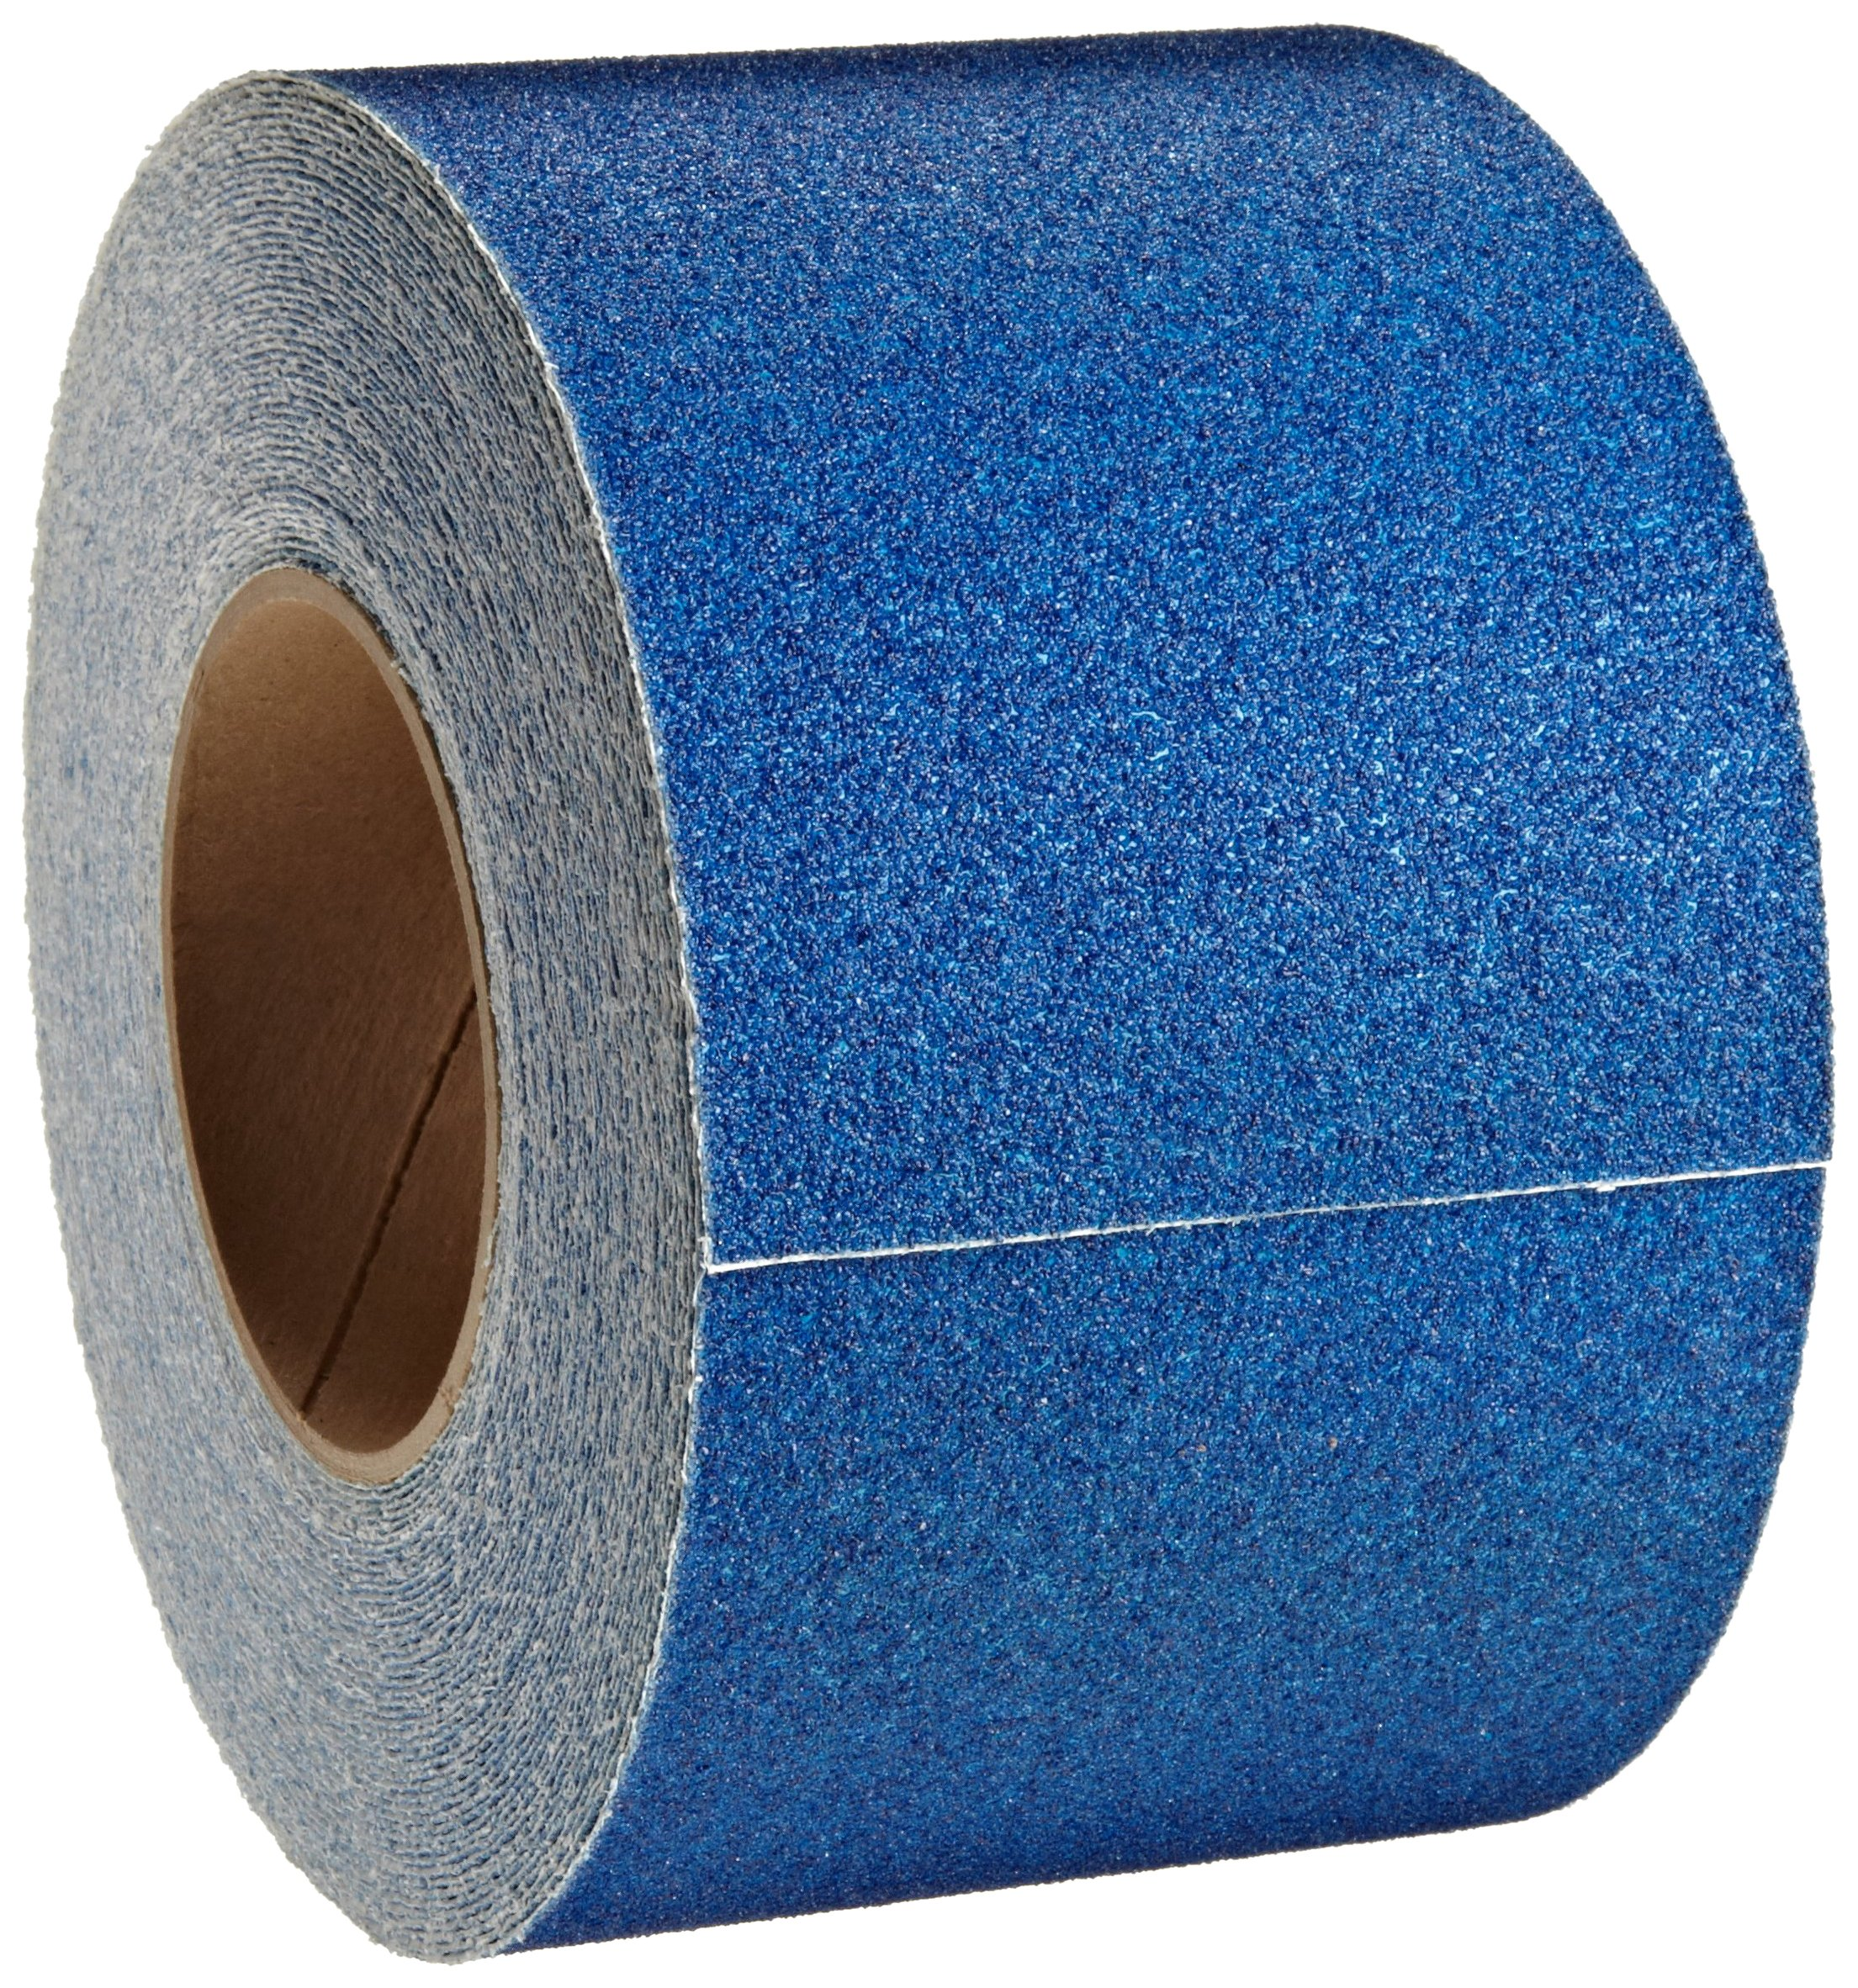 Jessup Safety Track 3325 Commercial Grade Non-Slip High Traction Safety Tape (60-Grit, Dark Blue, 4-Inch x 60-Foot Roll, Pack of 3)